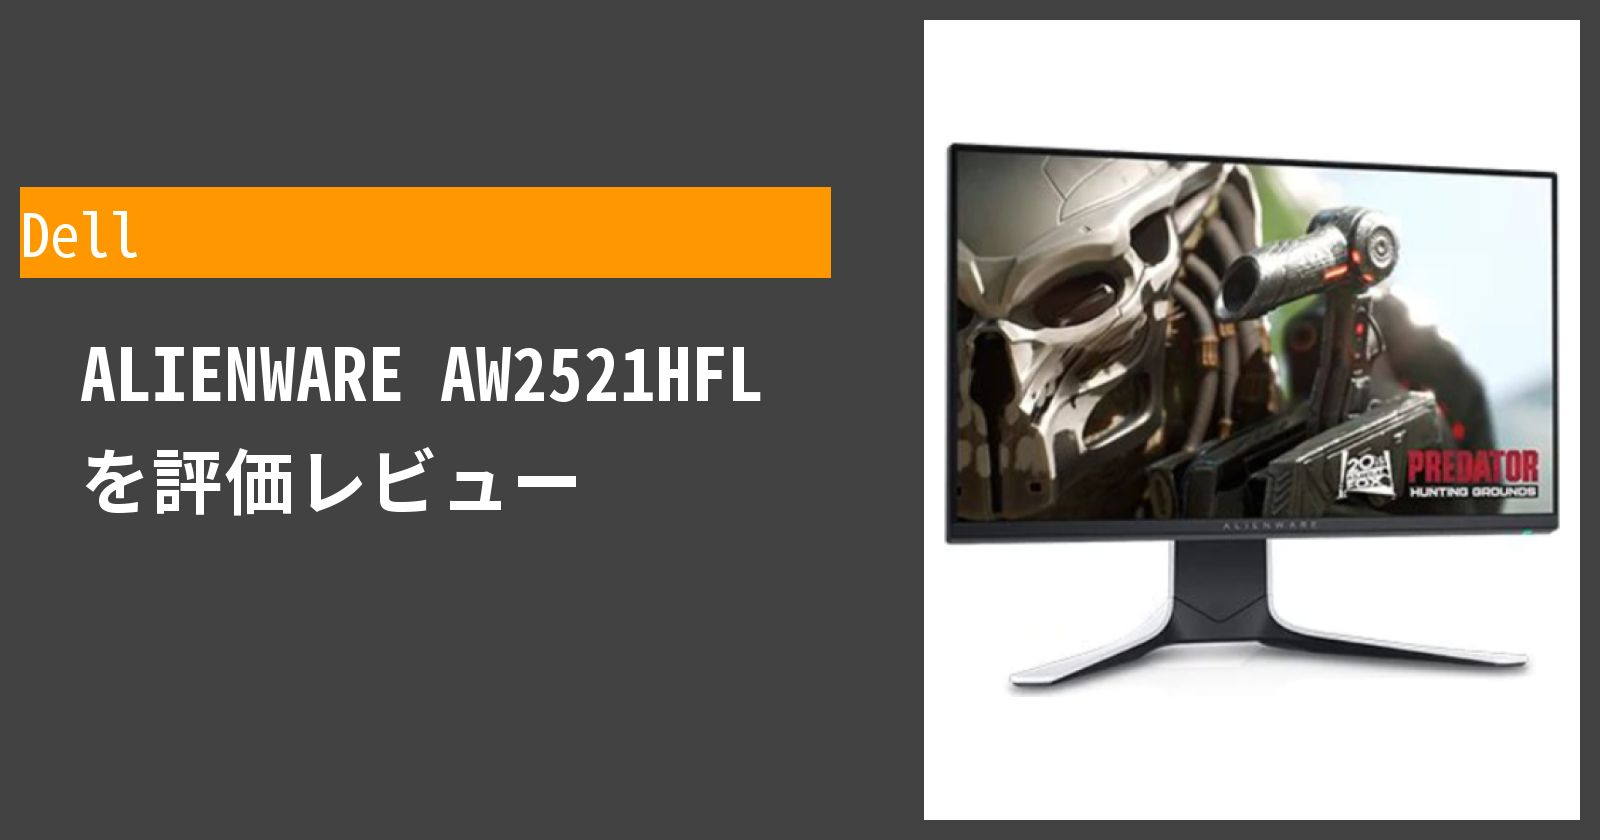 ALIENWARE AW2521HFLを徹底評価